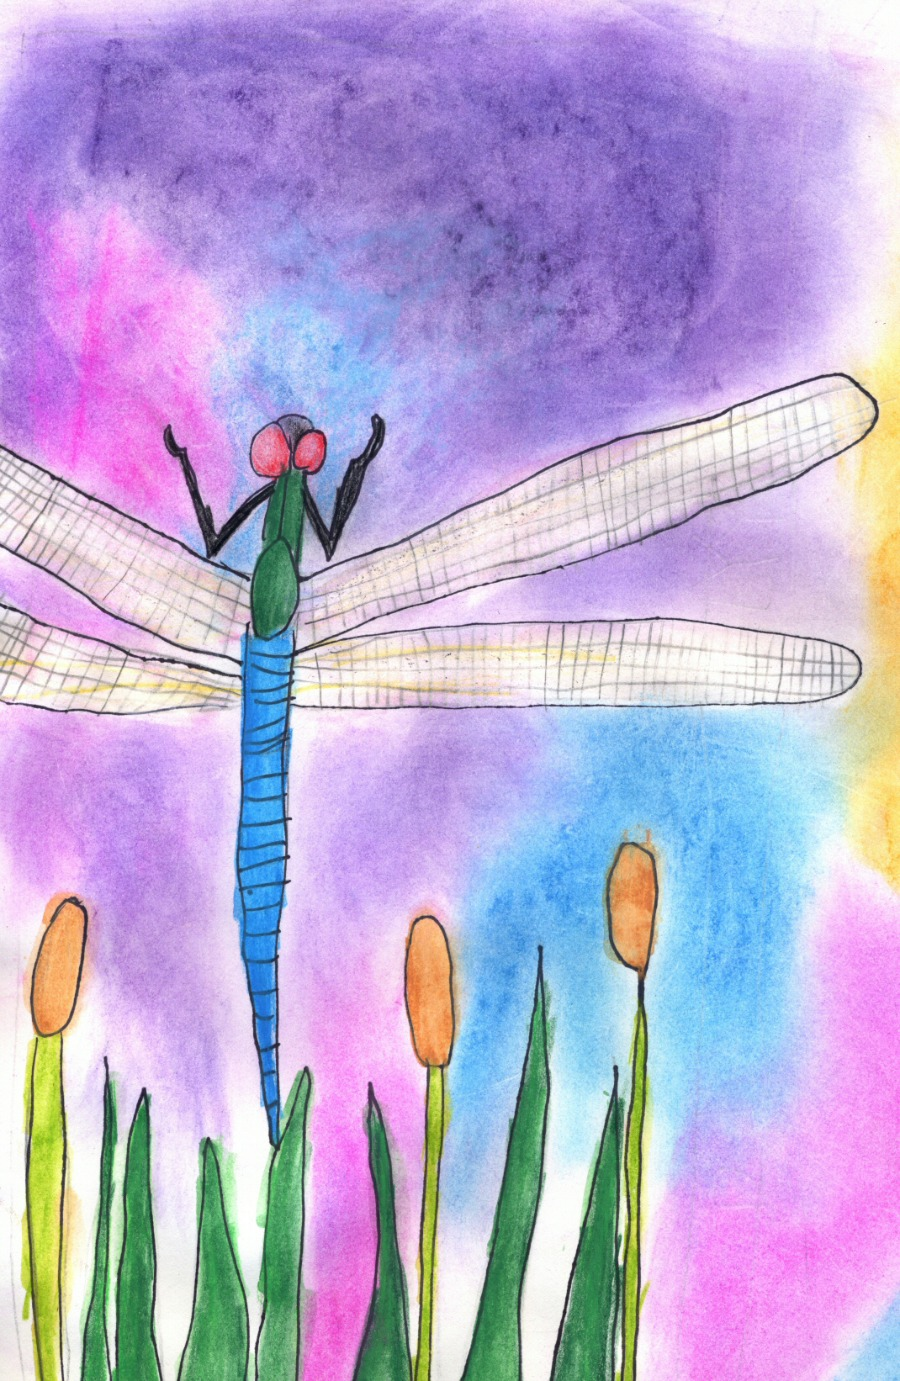 Dragon Fly by June, a student of Linda Cover